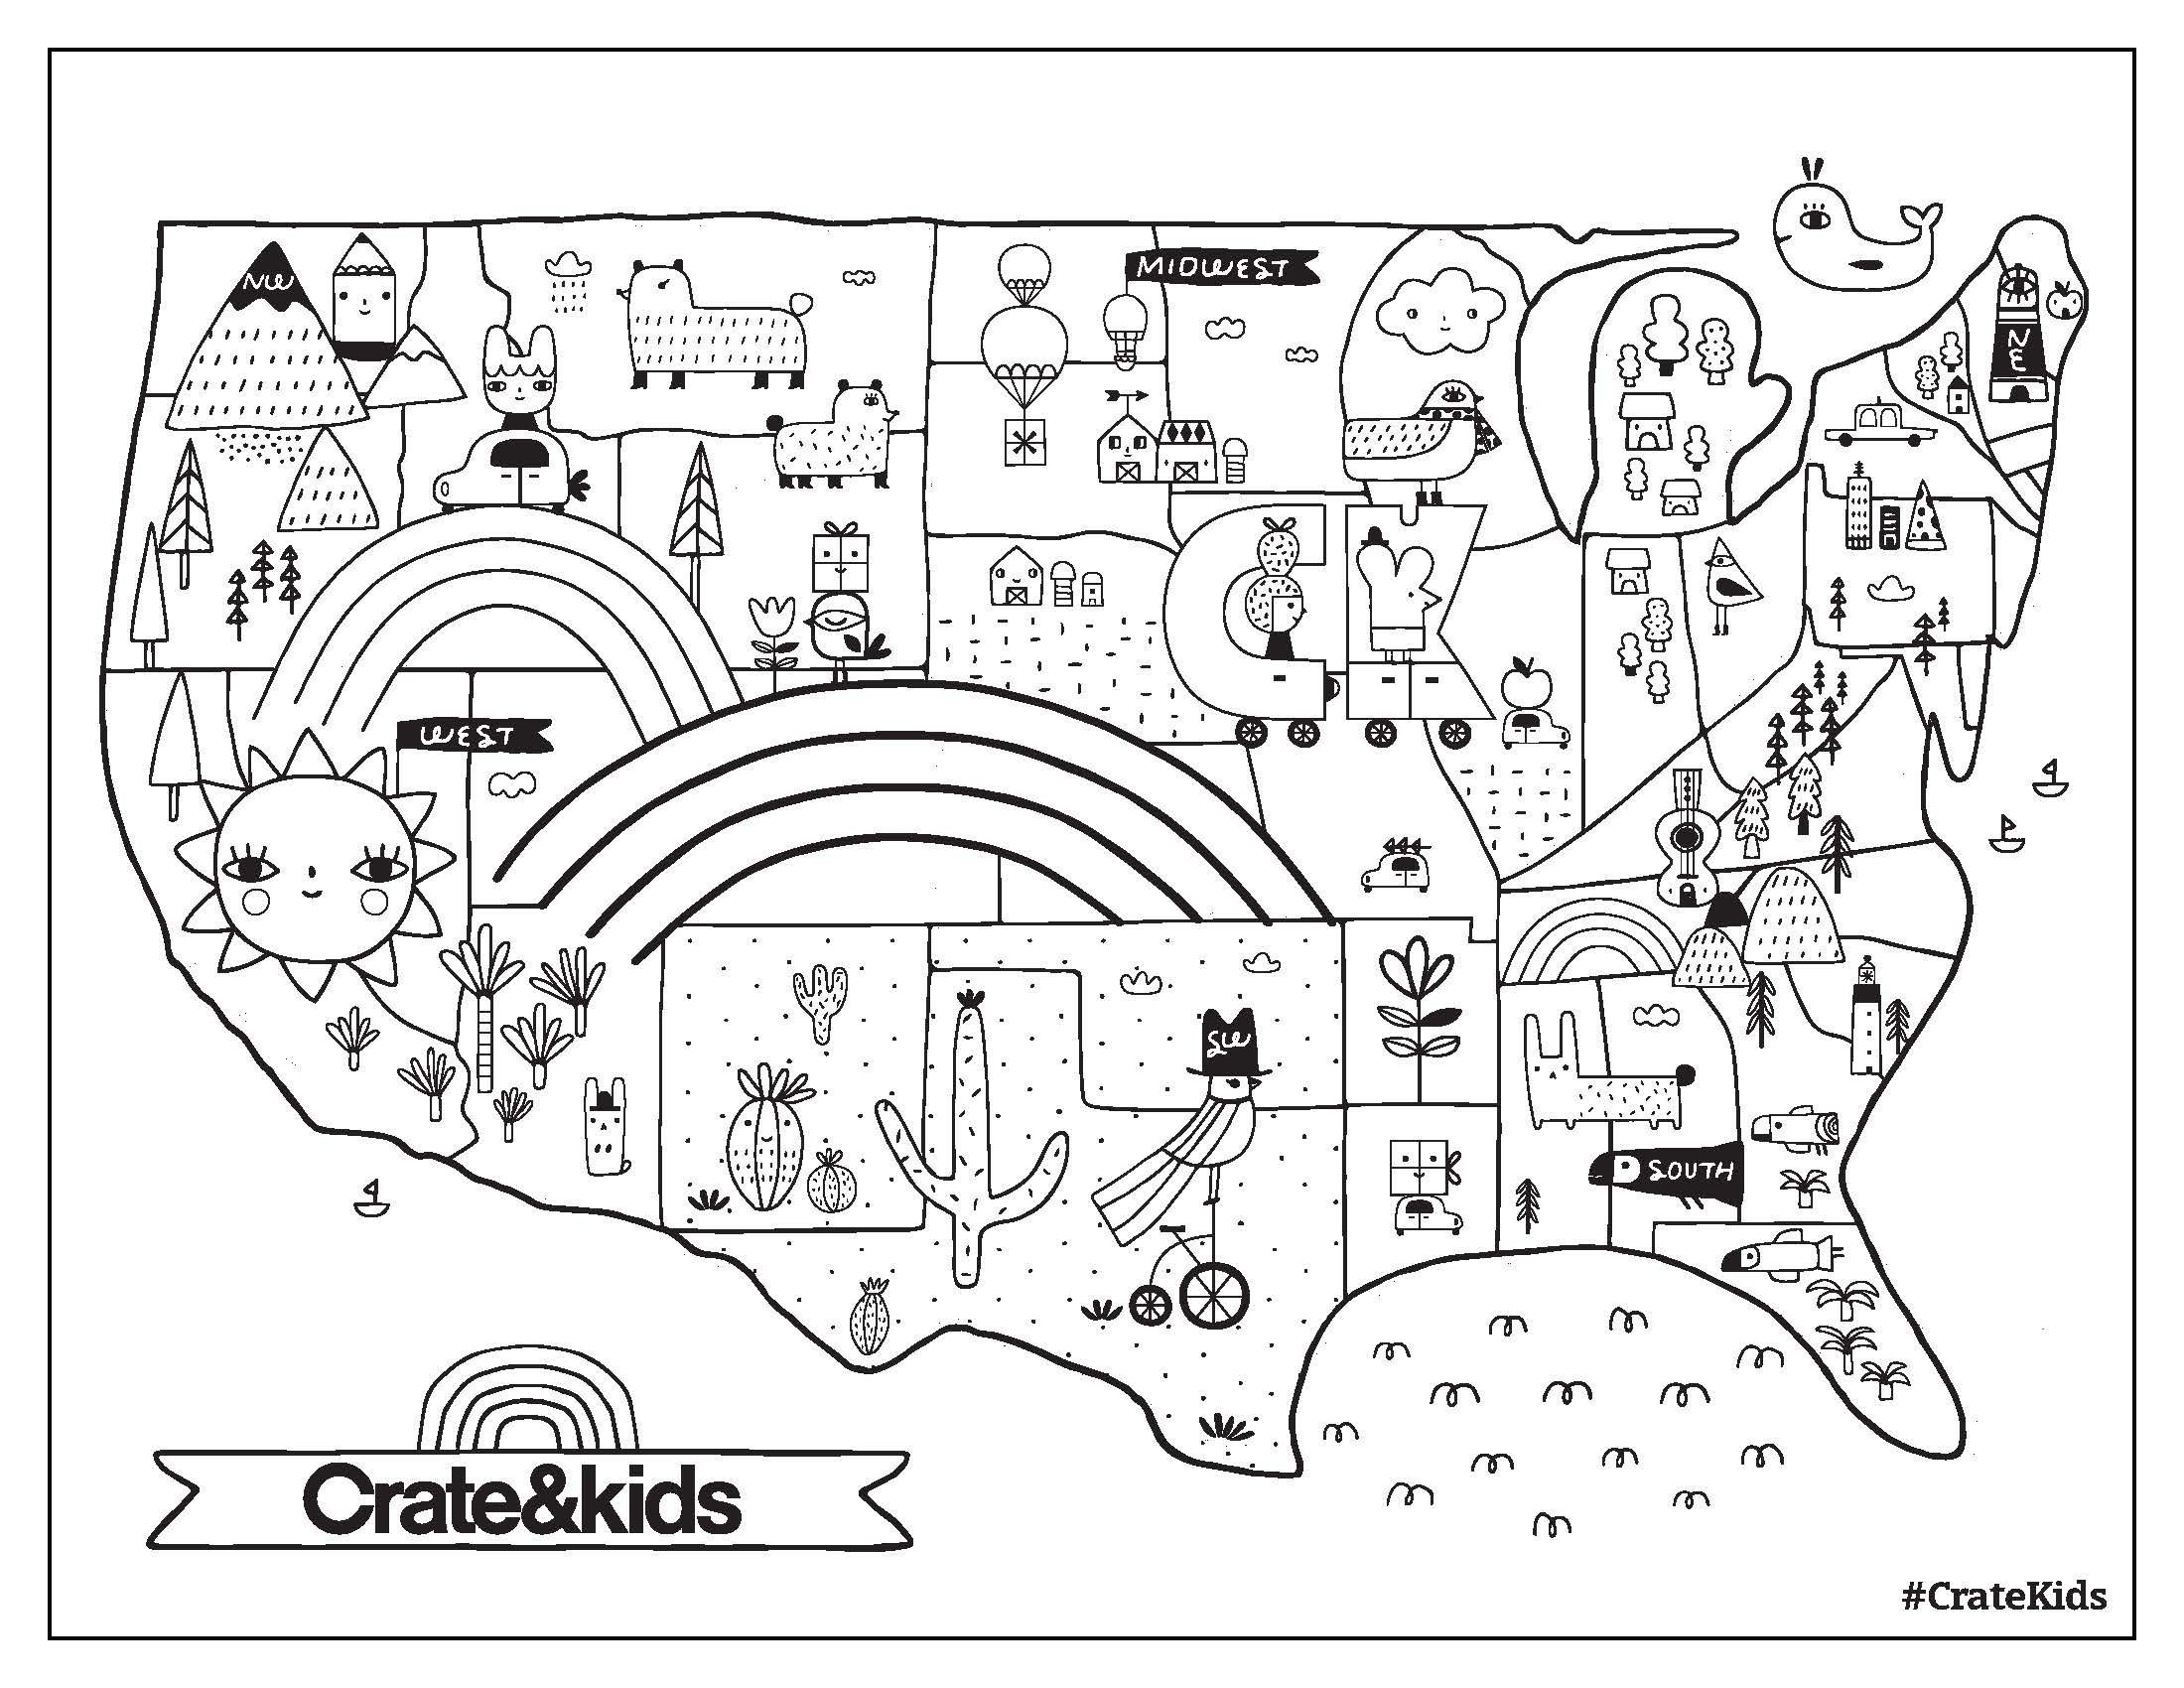 - Crate And Kids Free Printable Coloring Page Crate&Kids Blog